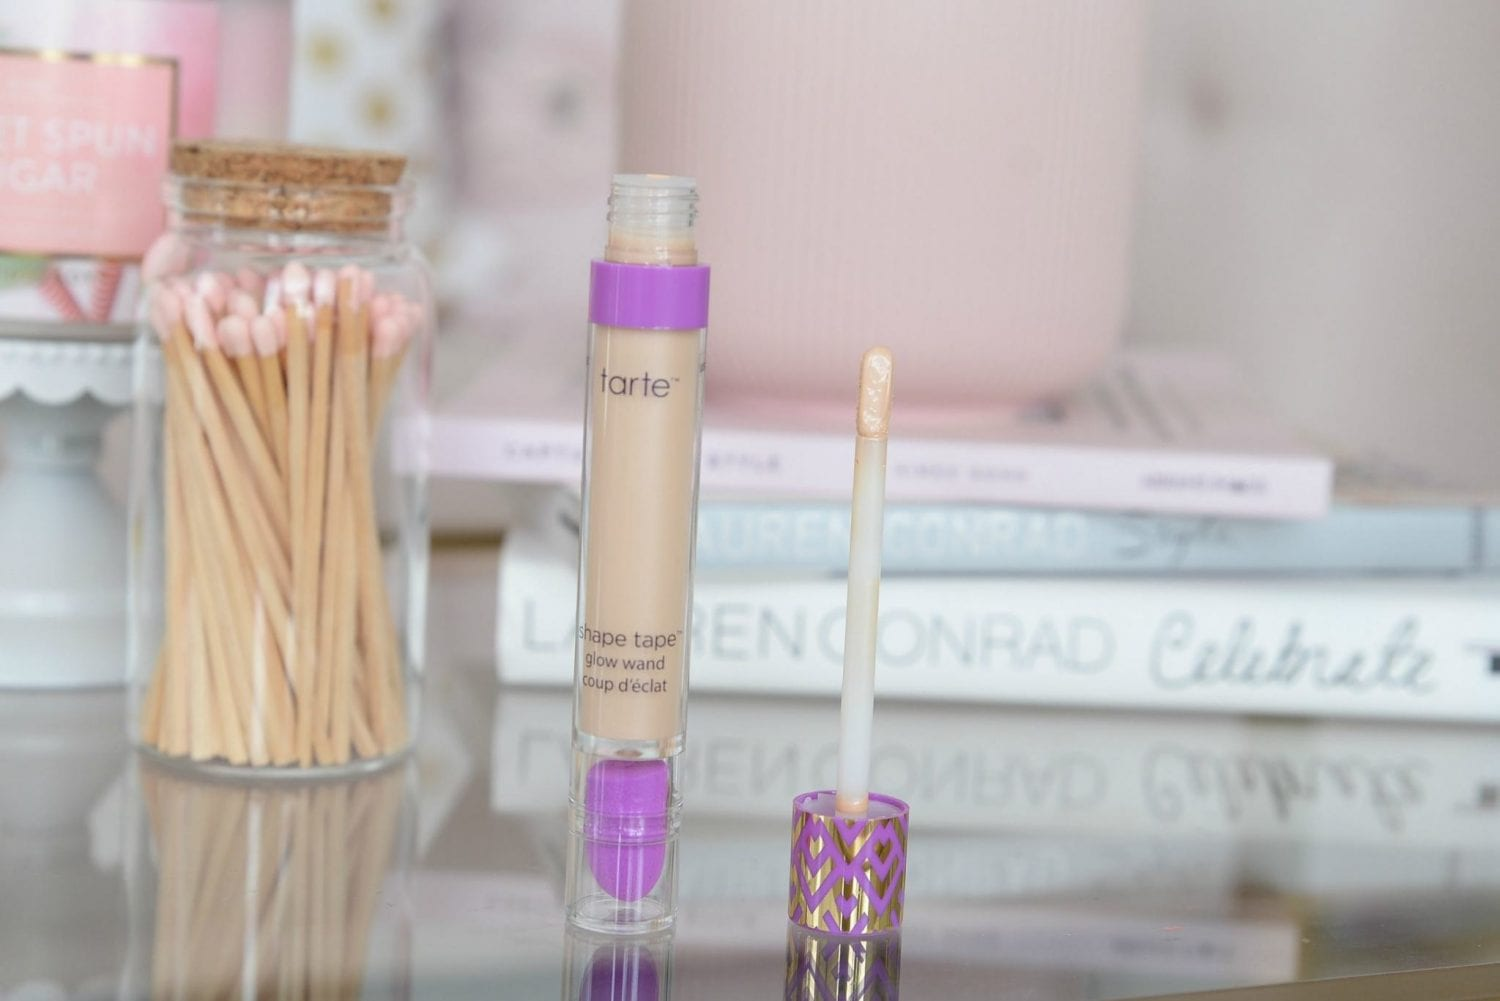 tarte Shape Tape Glow Wand